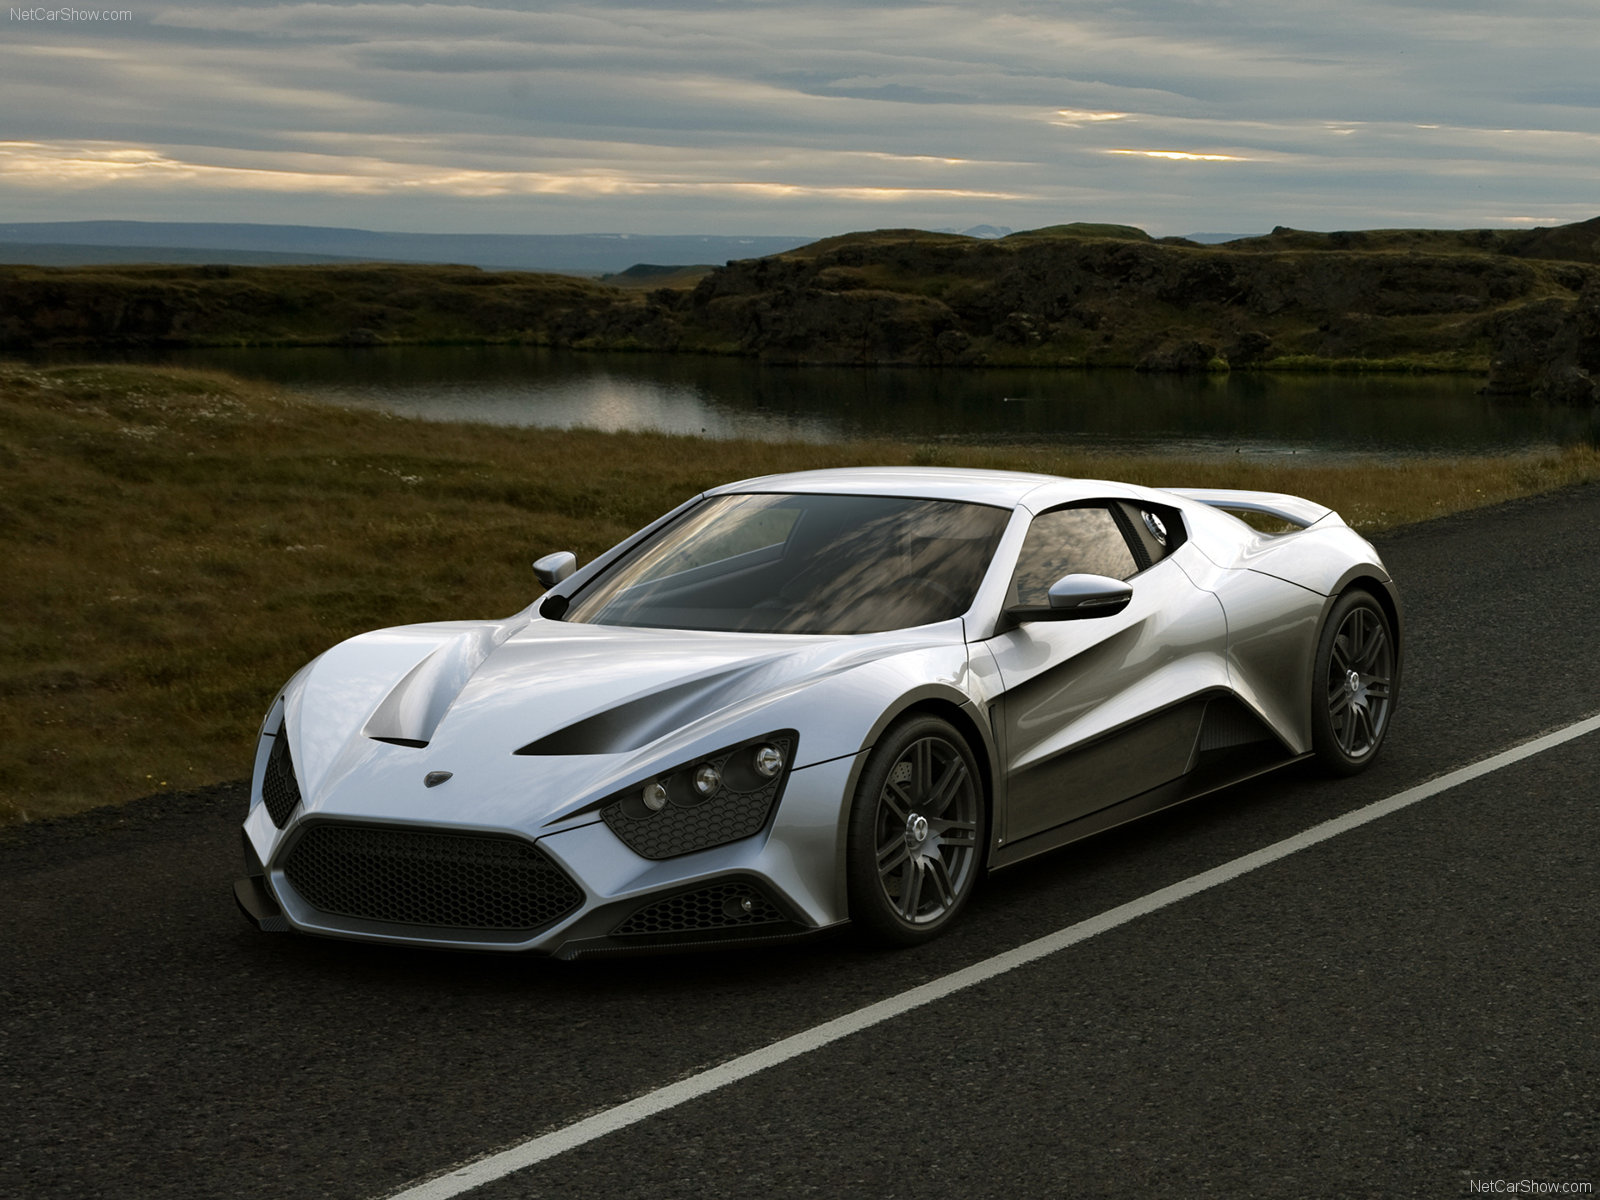 Our list of exotic cars includes the Zenvo ST1